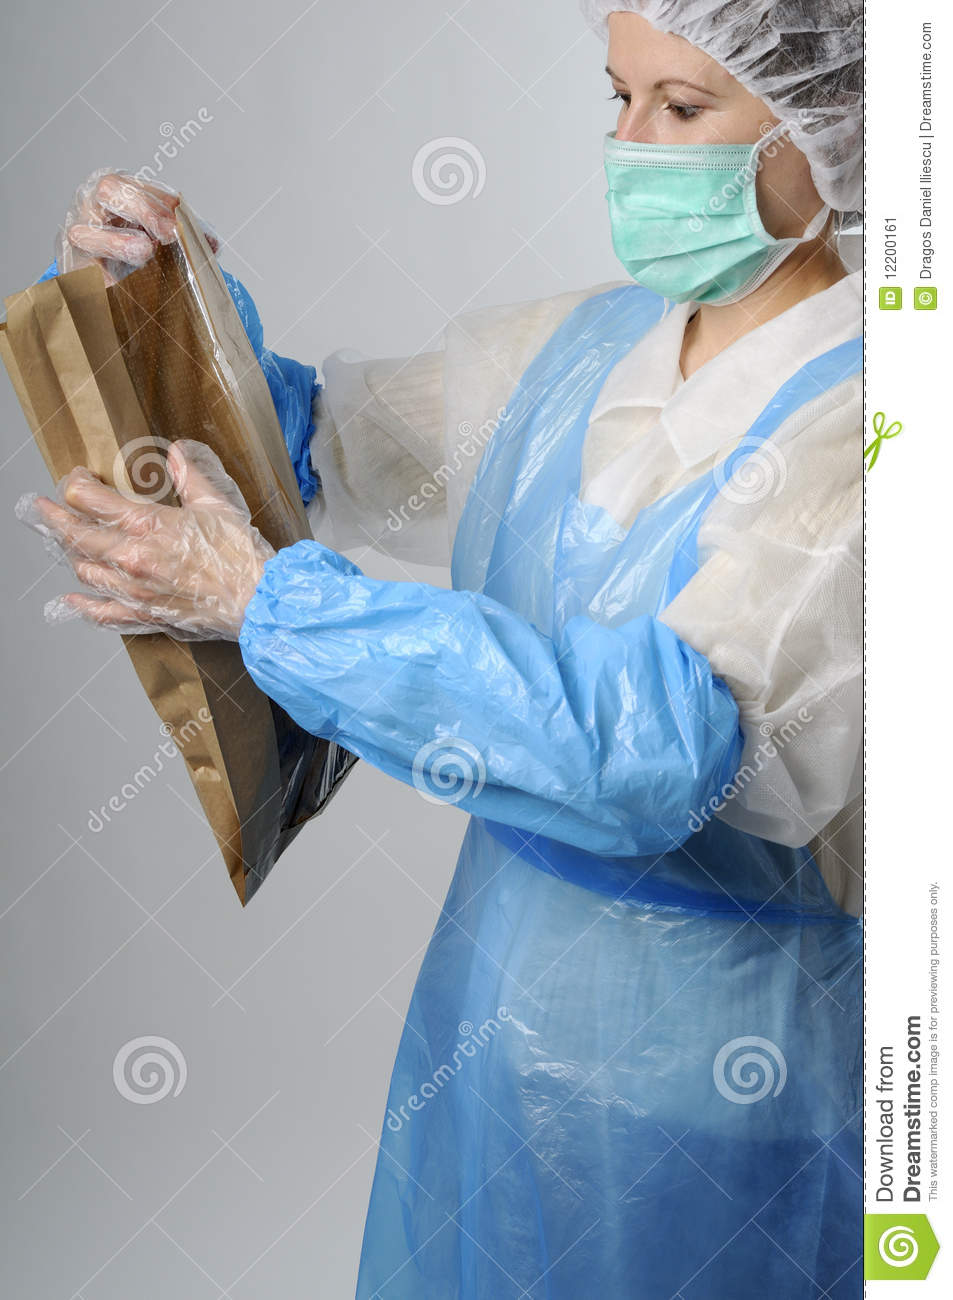 Worker packing bag